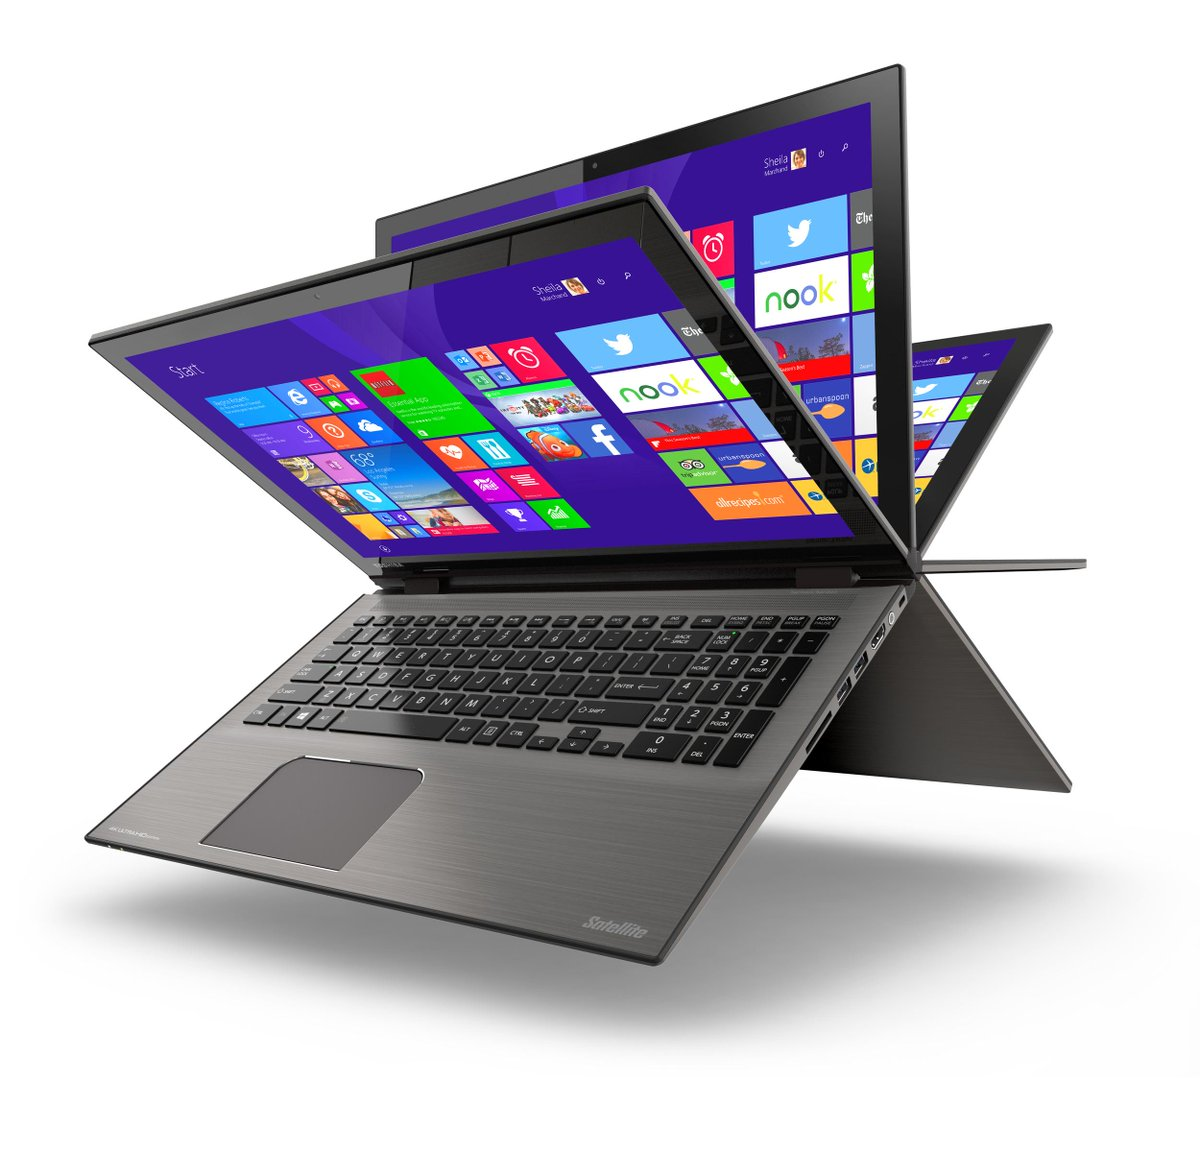 Toshiba's New Windows 10 Back-To-School Laptops by @fitztepper